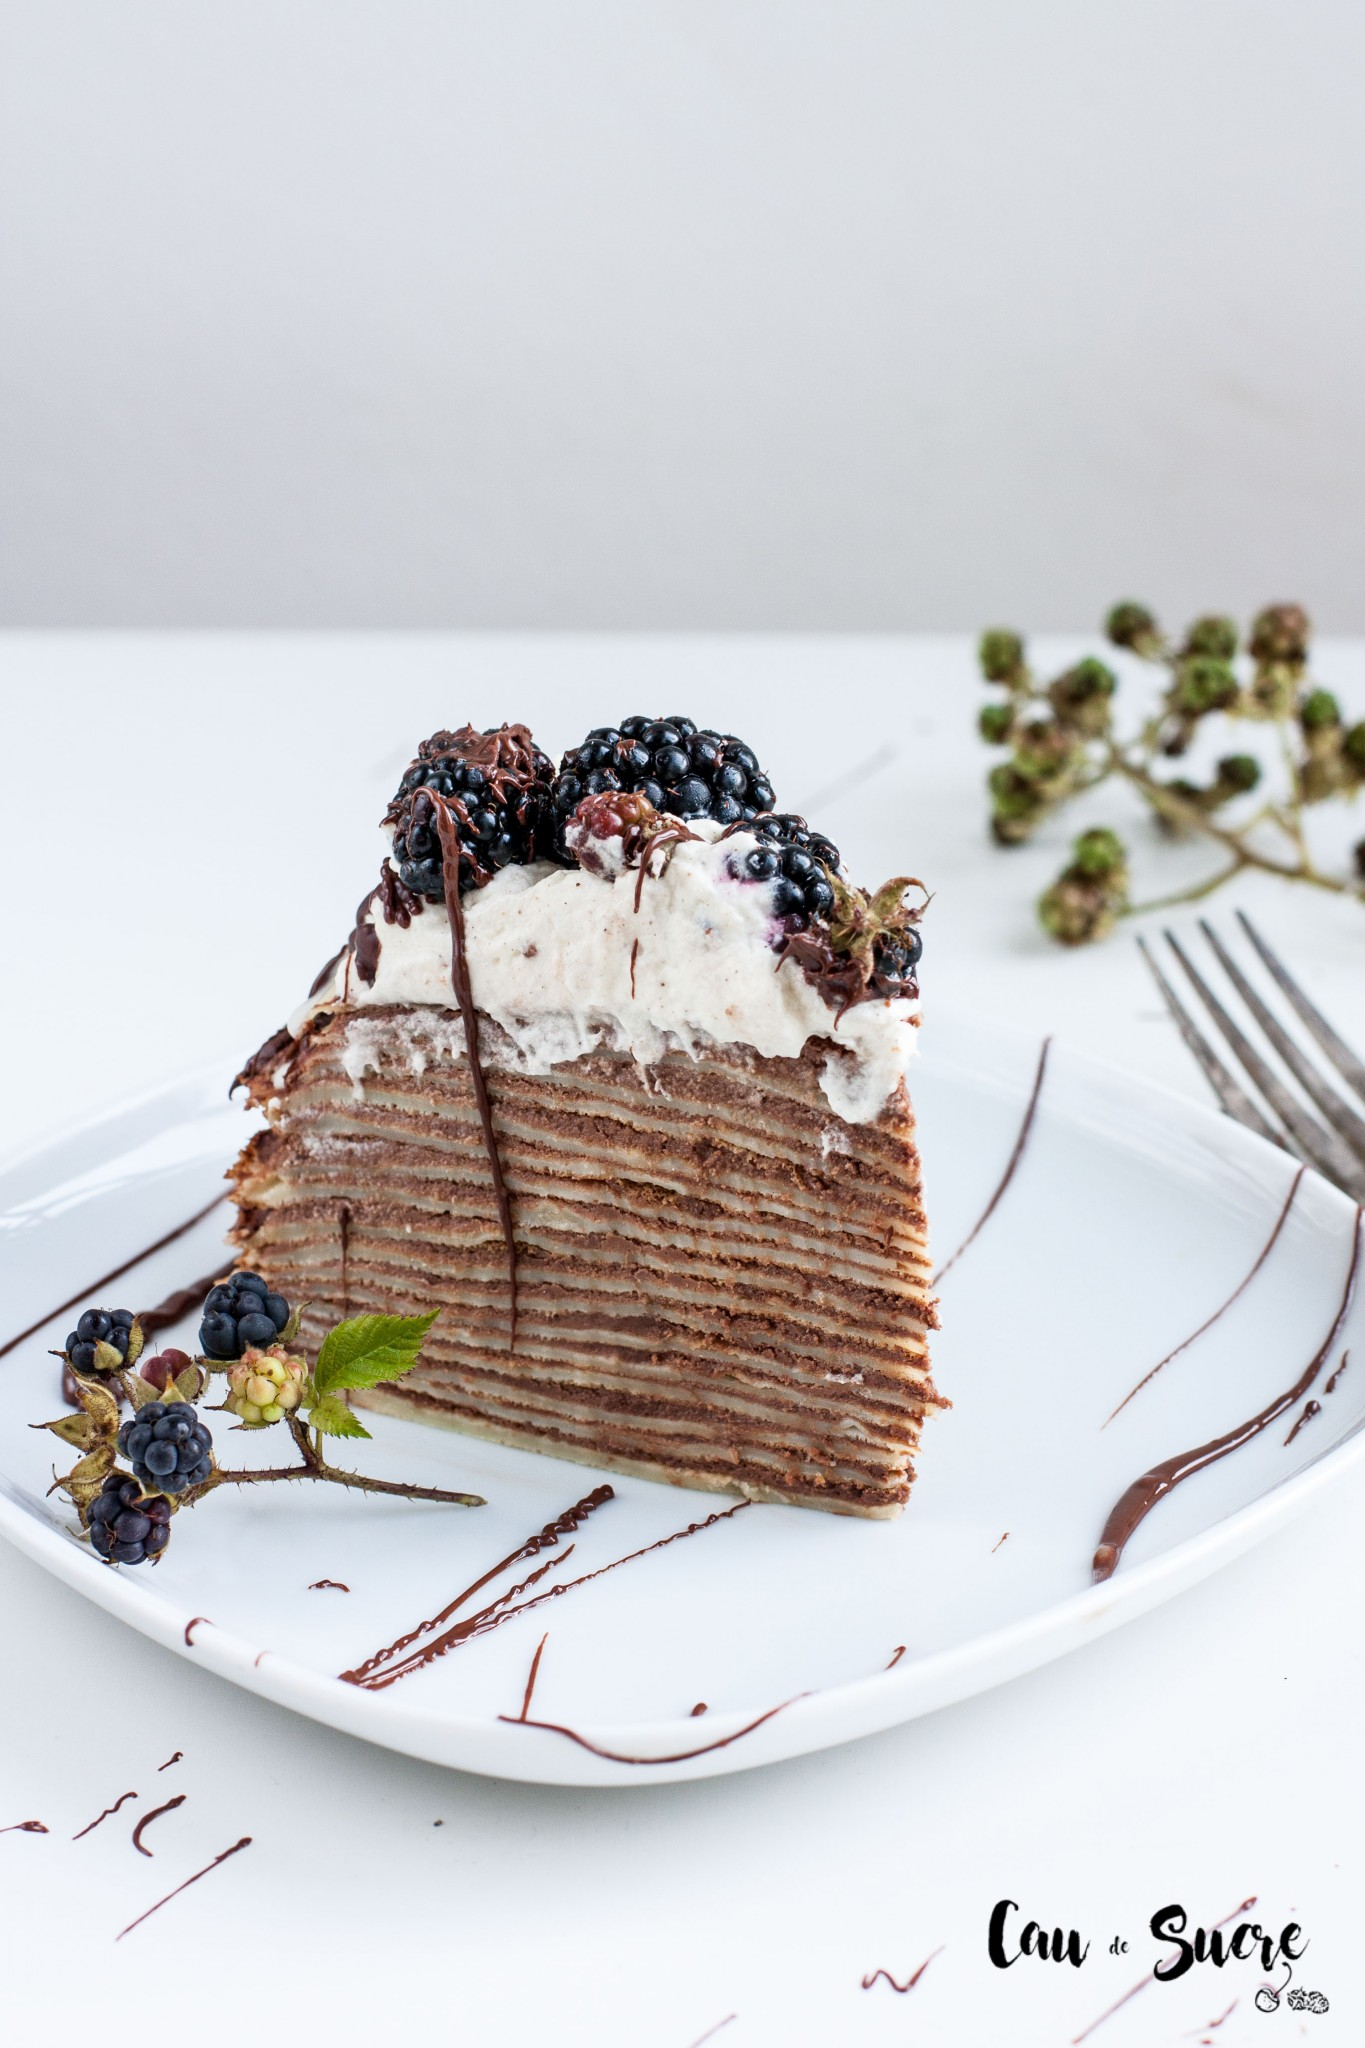 Tarta_mil_crepes_chocolate_moras-29